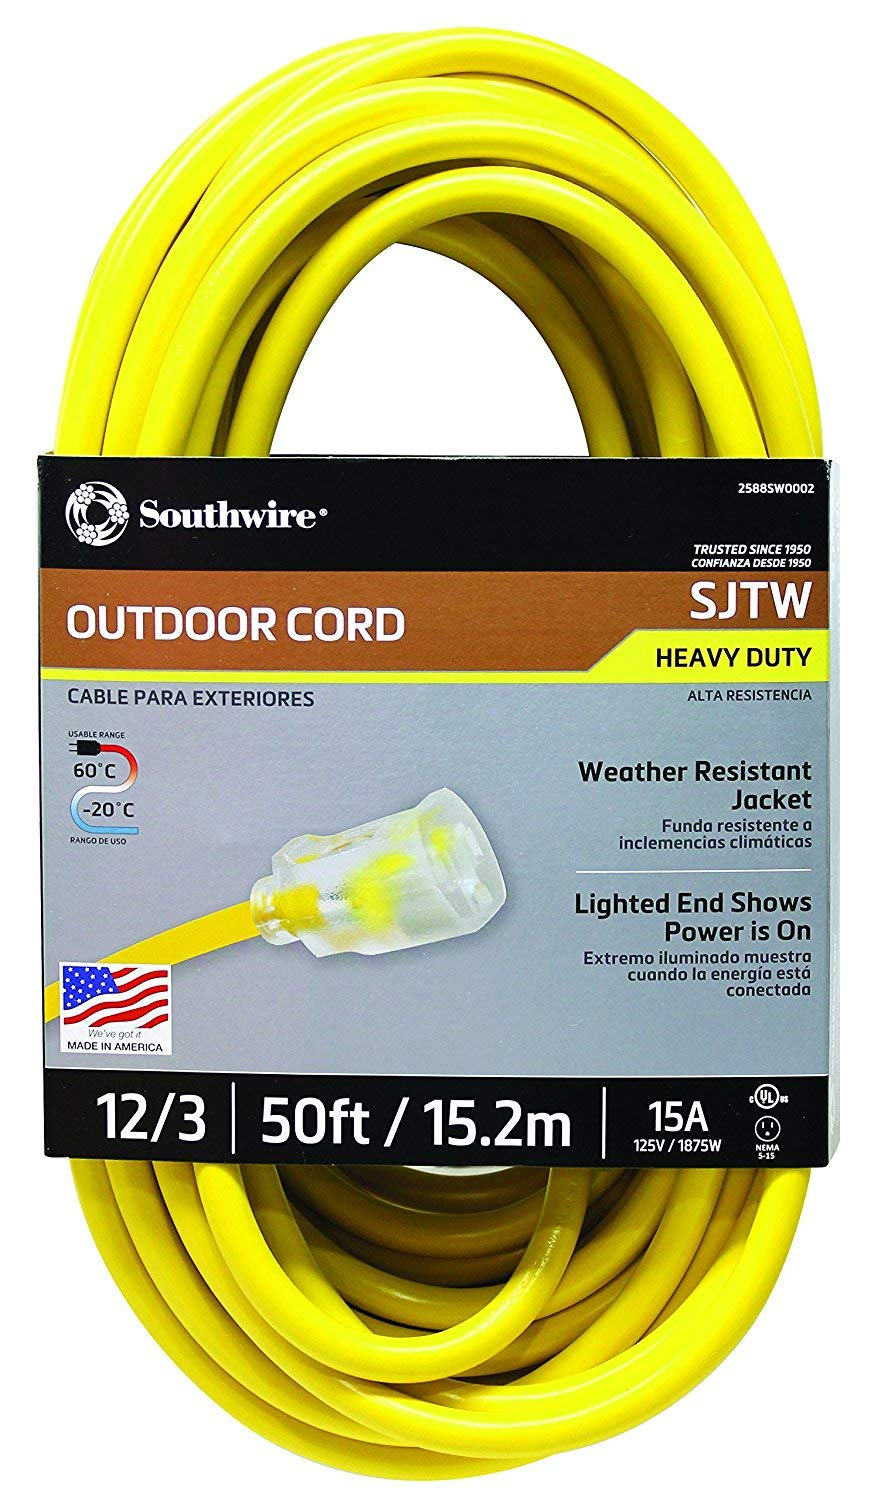 Southwire 2588SW0002 Outdoor Extension Cord